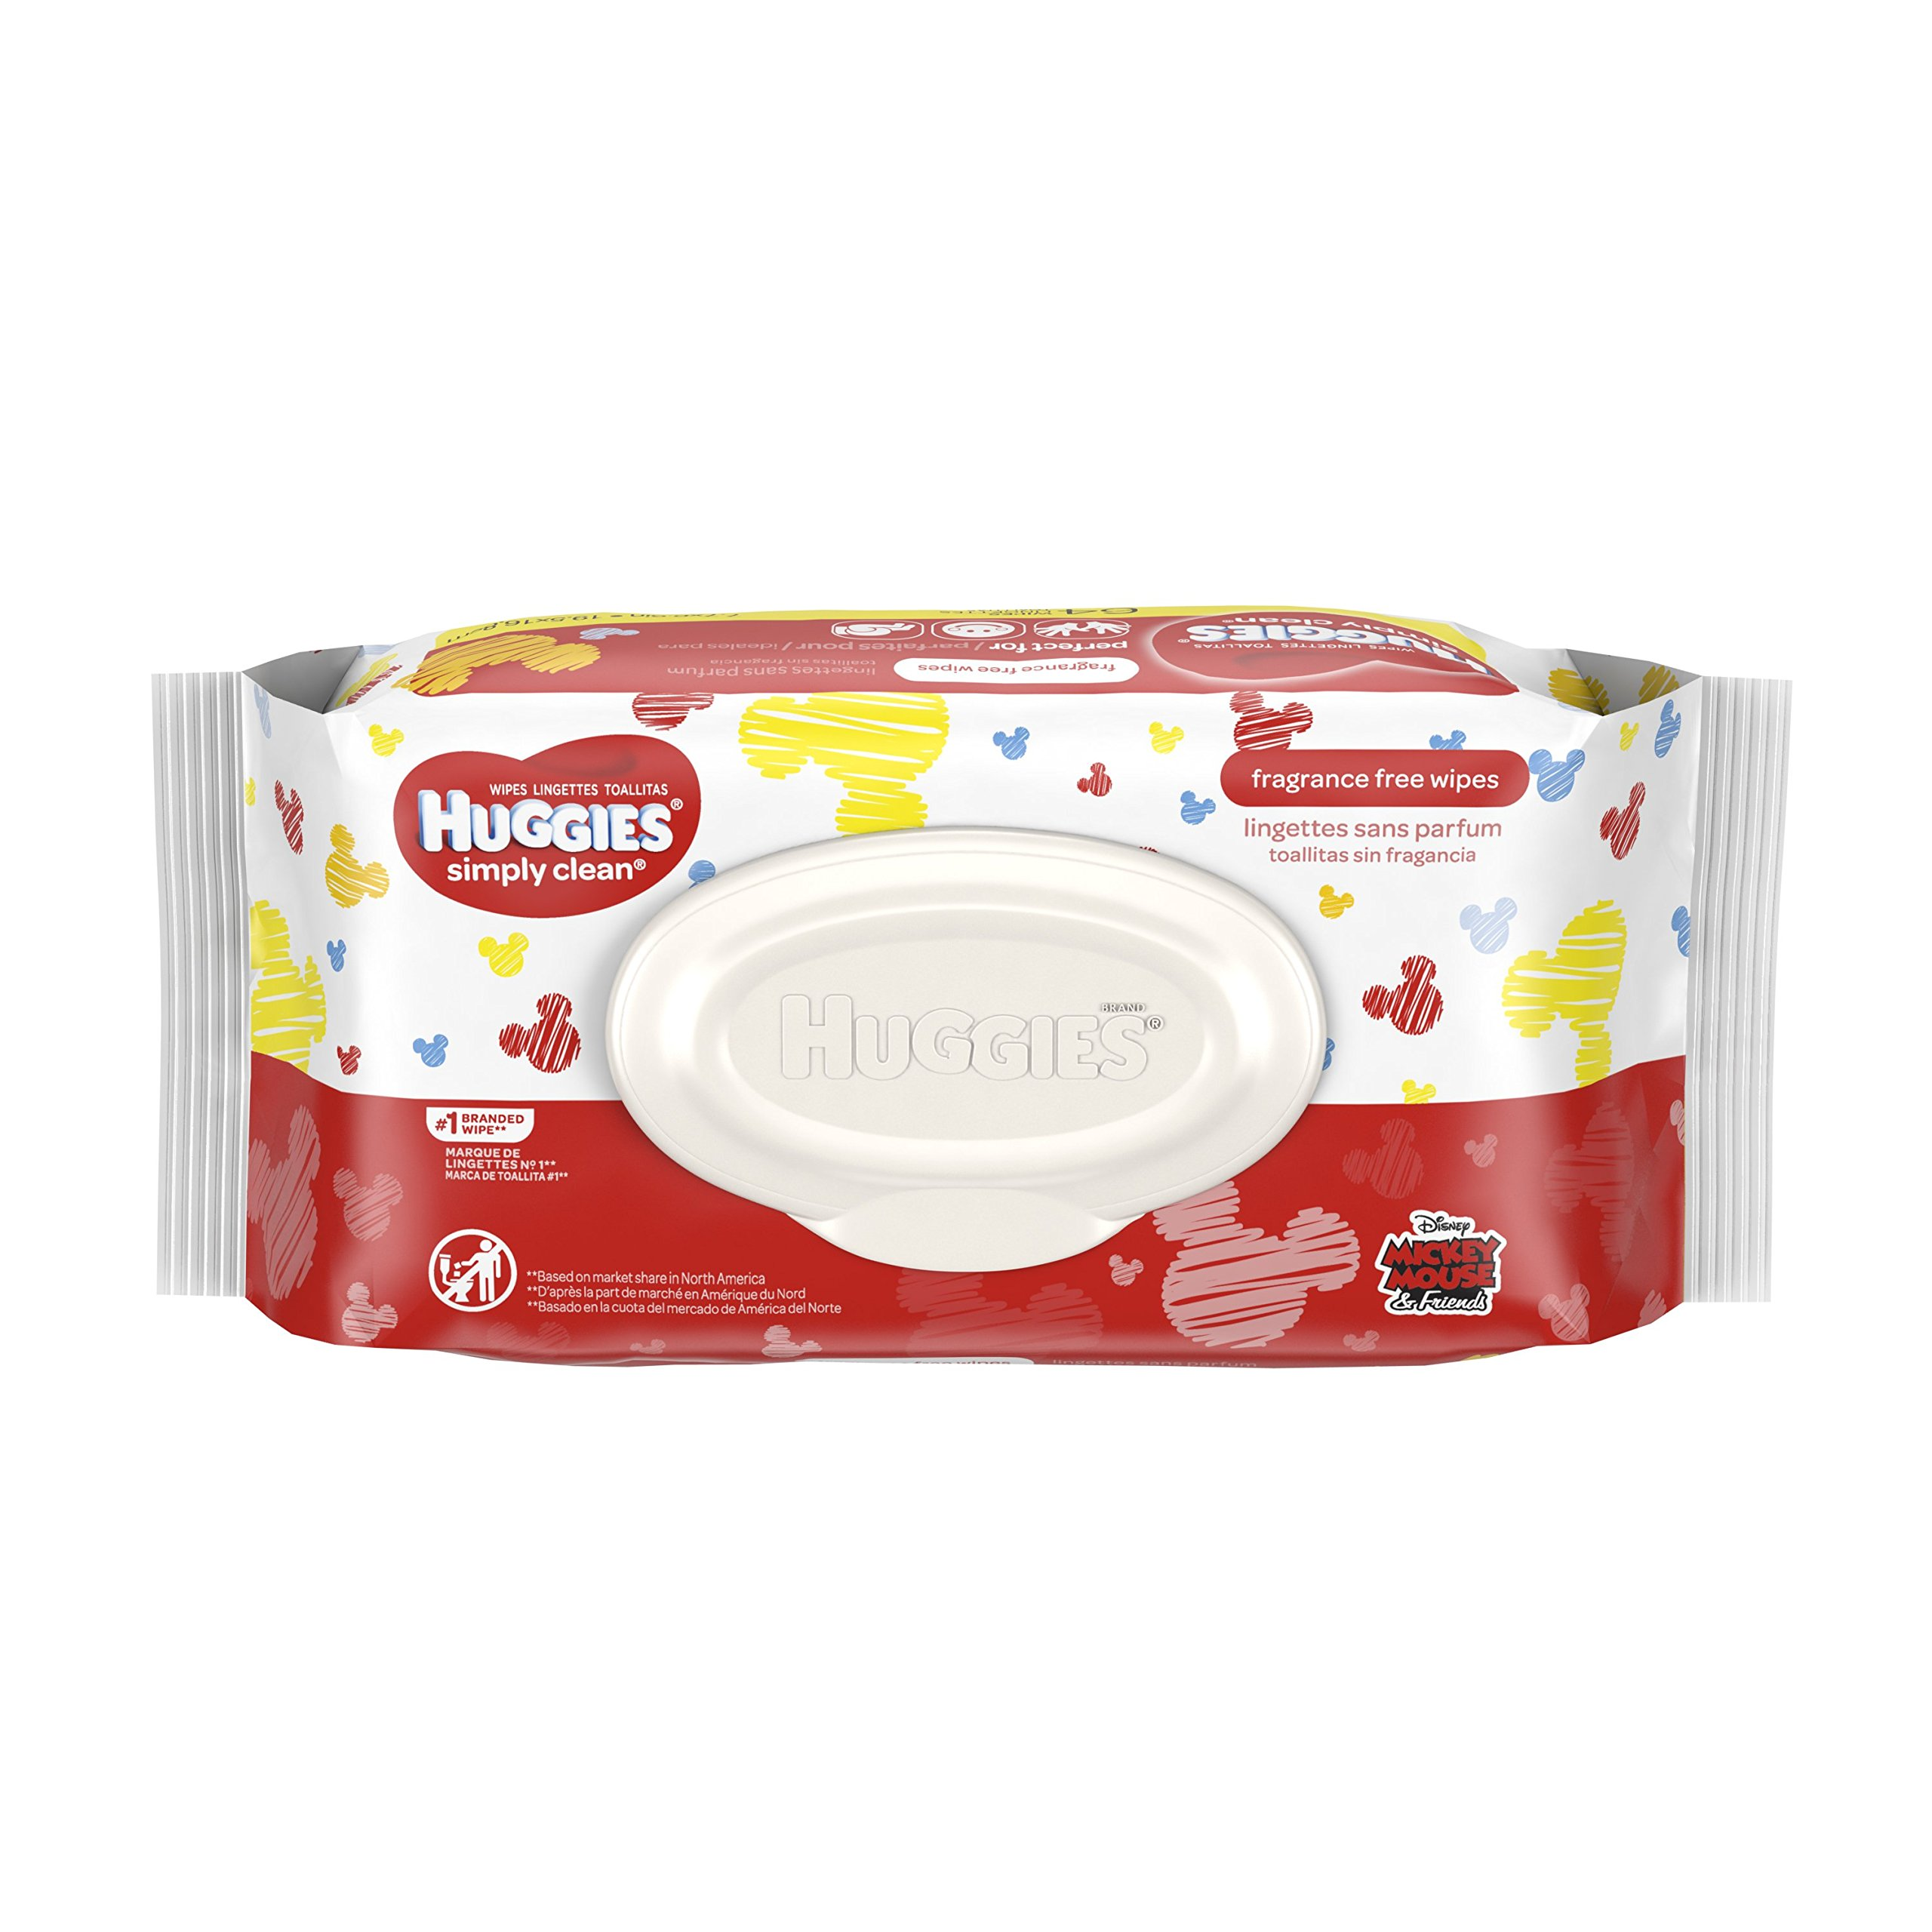 HUGGIES Simply Clean Fragrance-Free Baby Wipes Soft Pack, 64 Count, Packaging may vary.